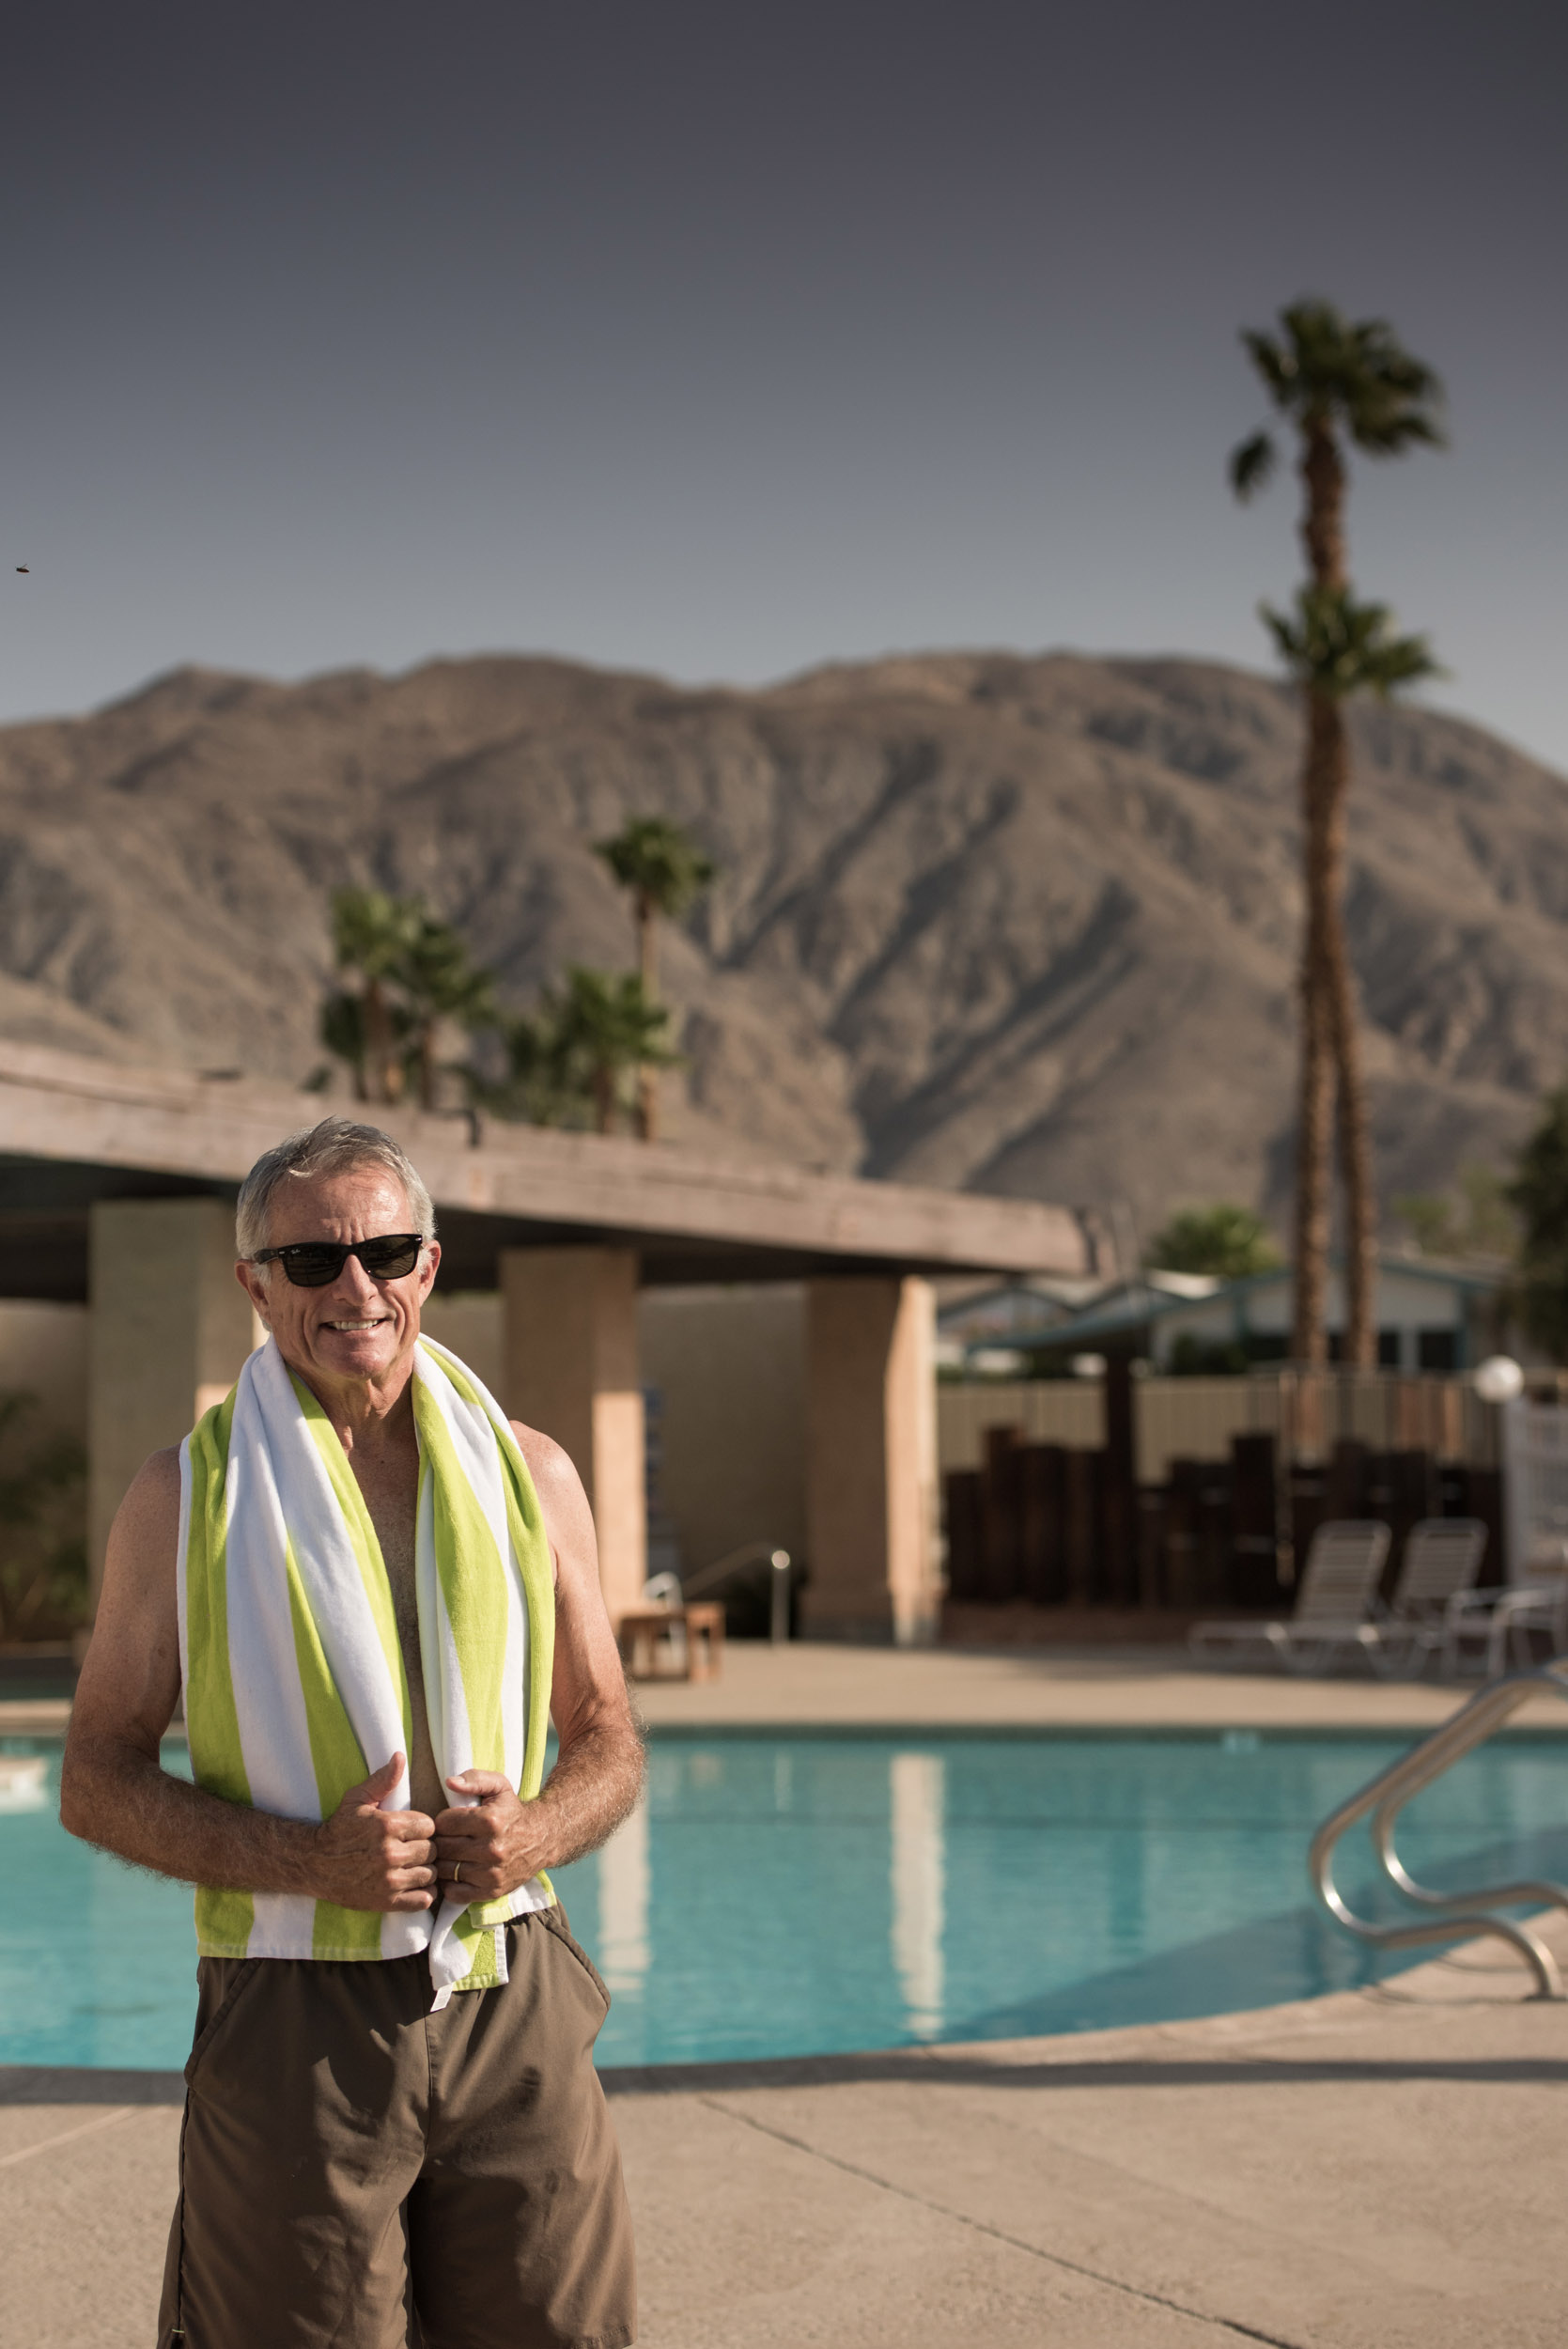 man-with-swimming-pool-desert-hot-springs-california.jpg